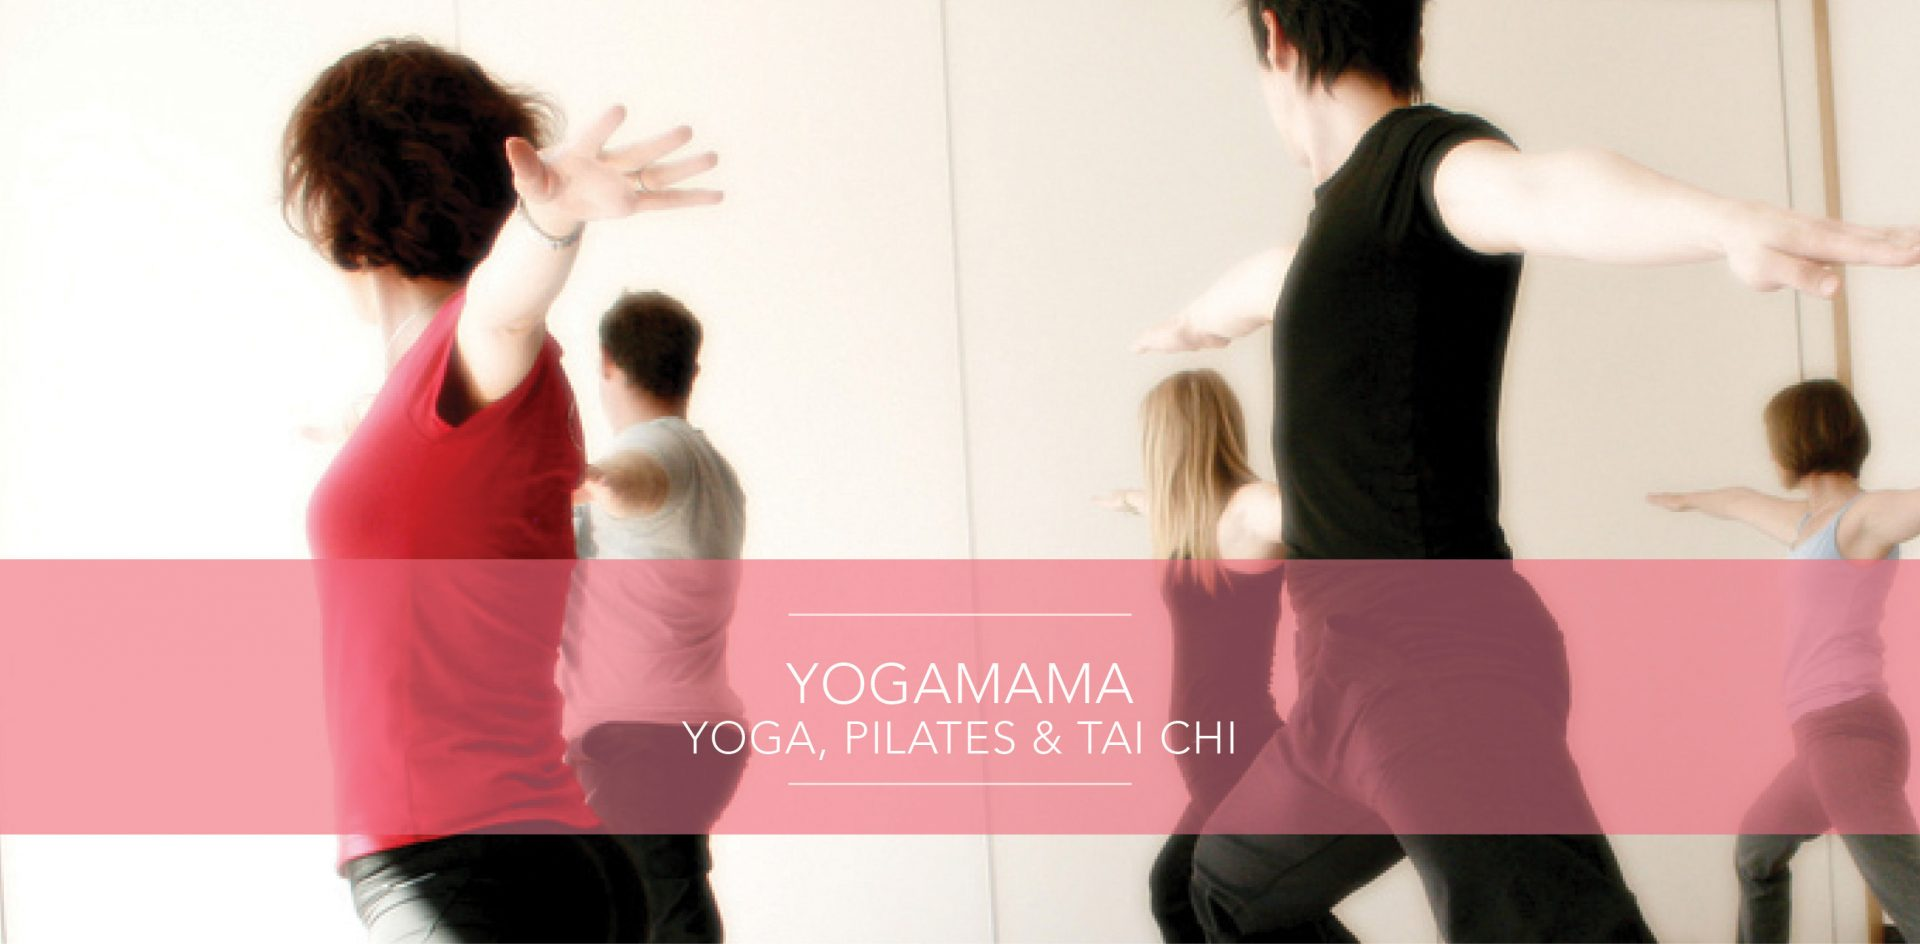 Yoga, Pilates and Tai Chi services at Yoga Mama Wellness